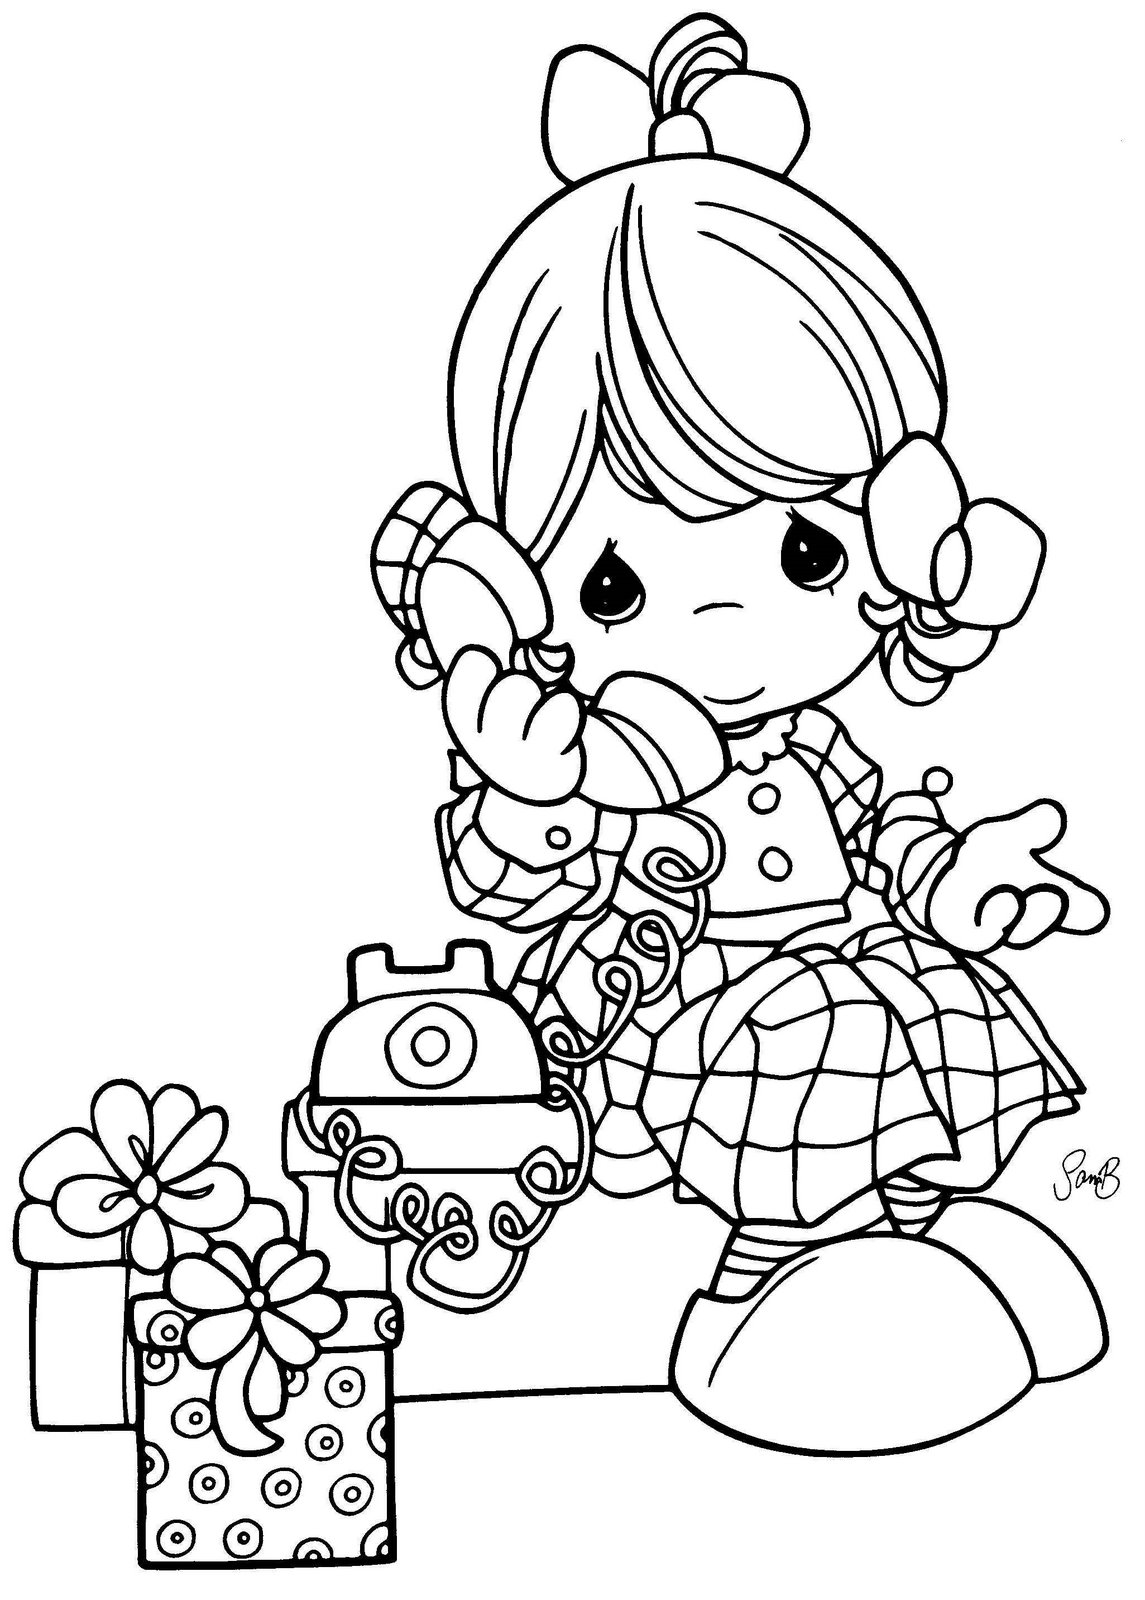 Precious moments drawings coloring girl with phone for Precious moments coloring page